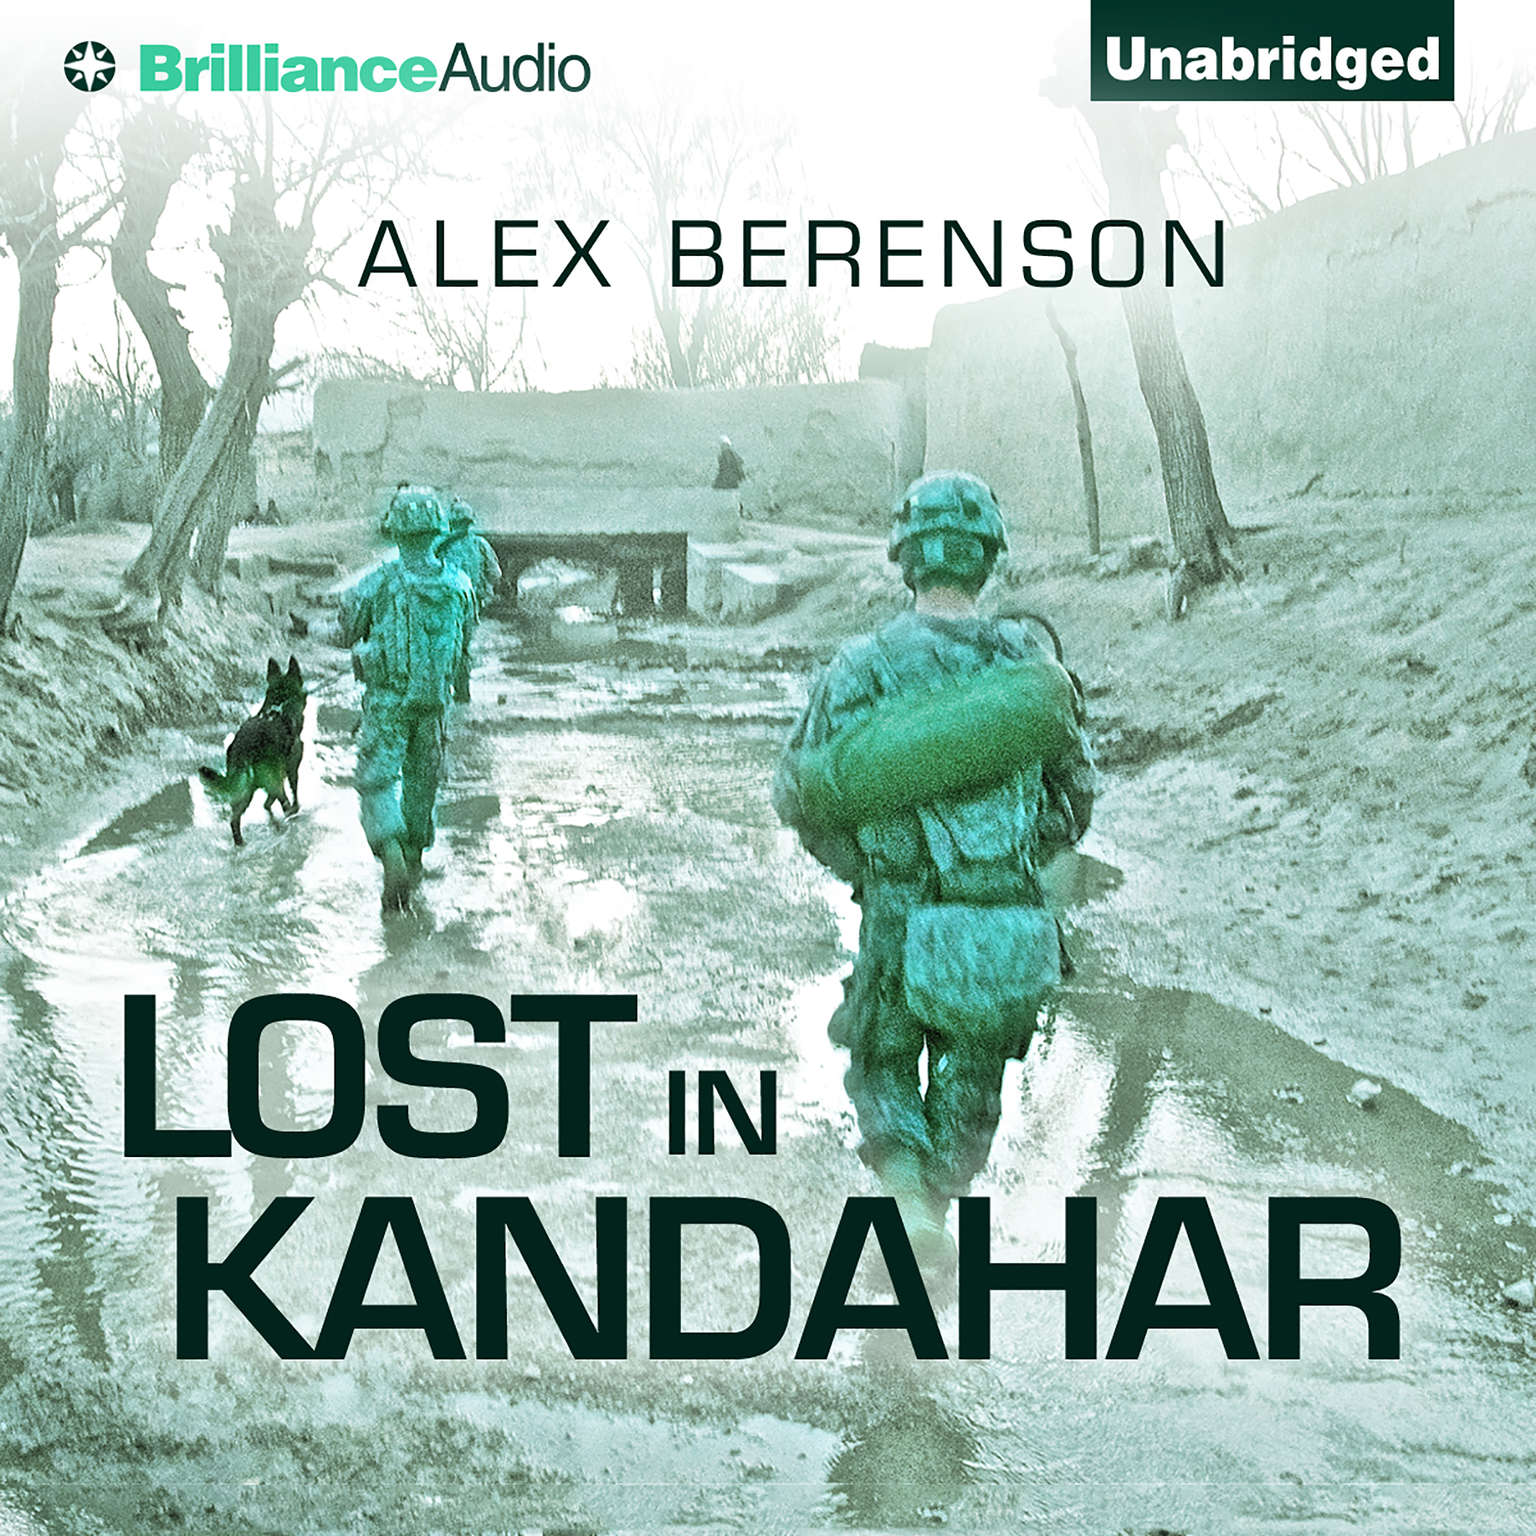 Printable Lost in Kandahar Audiobook Cover Art